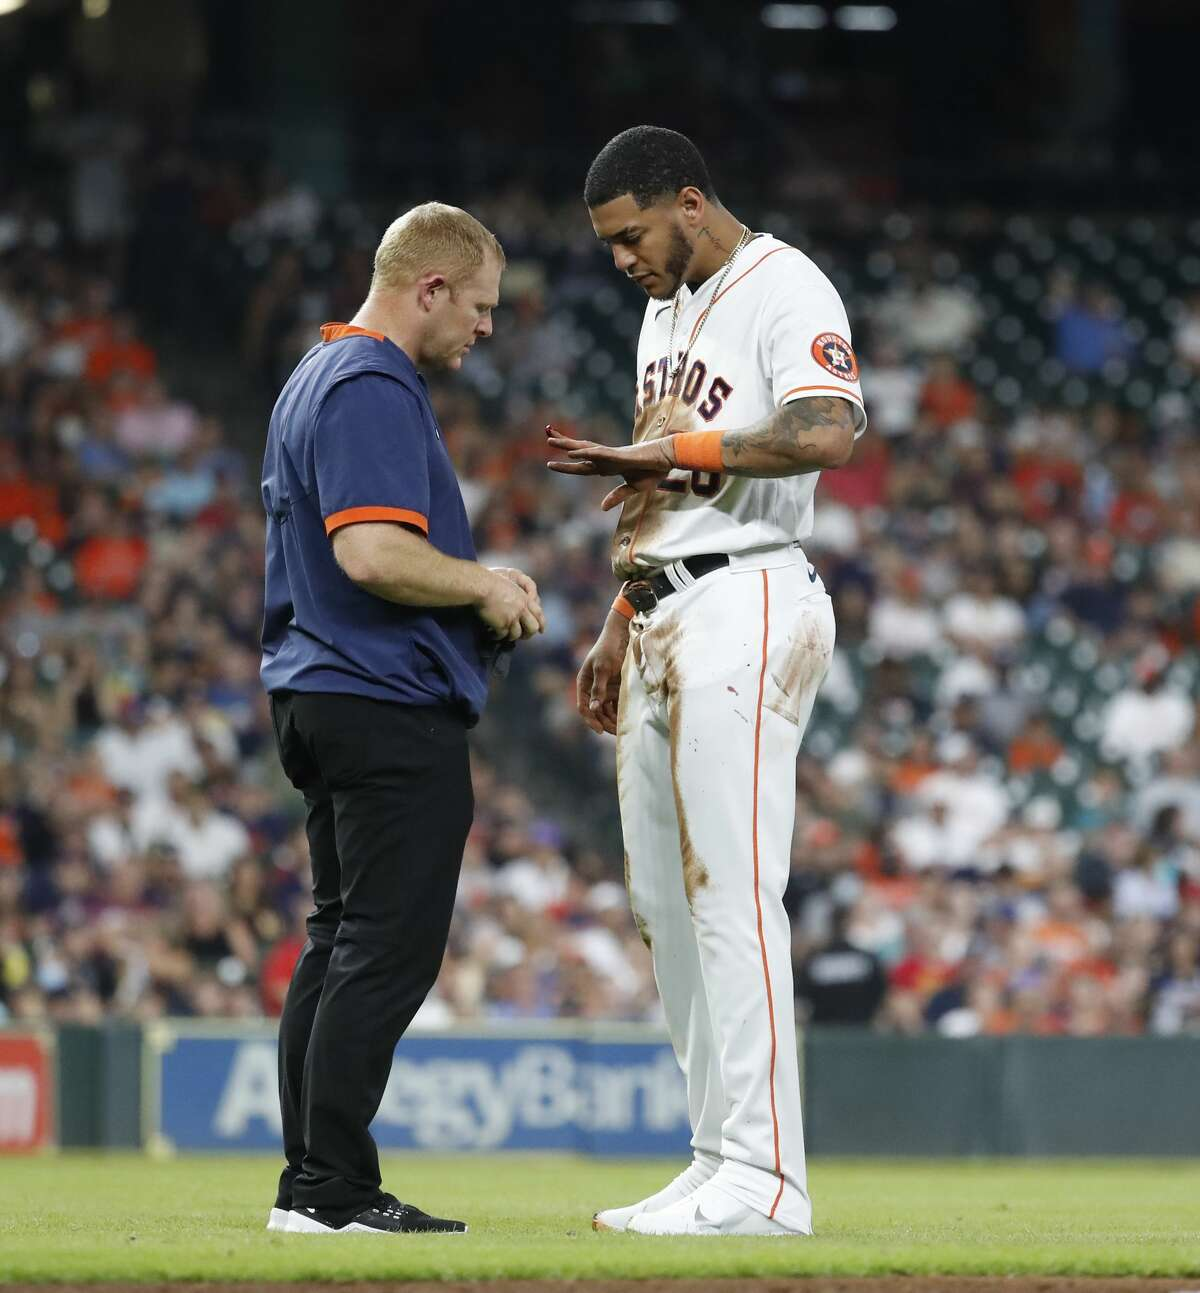 Houston Astros Jose Siri (26) gets help with a bloody finder after stealing second base from Los Angeles Angels shortstop Luis Rengifo (2) during the fourth inning of a MLB baseball game at Minute Maid Park, Saturday, September 11, 2021, in Houston.